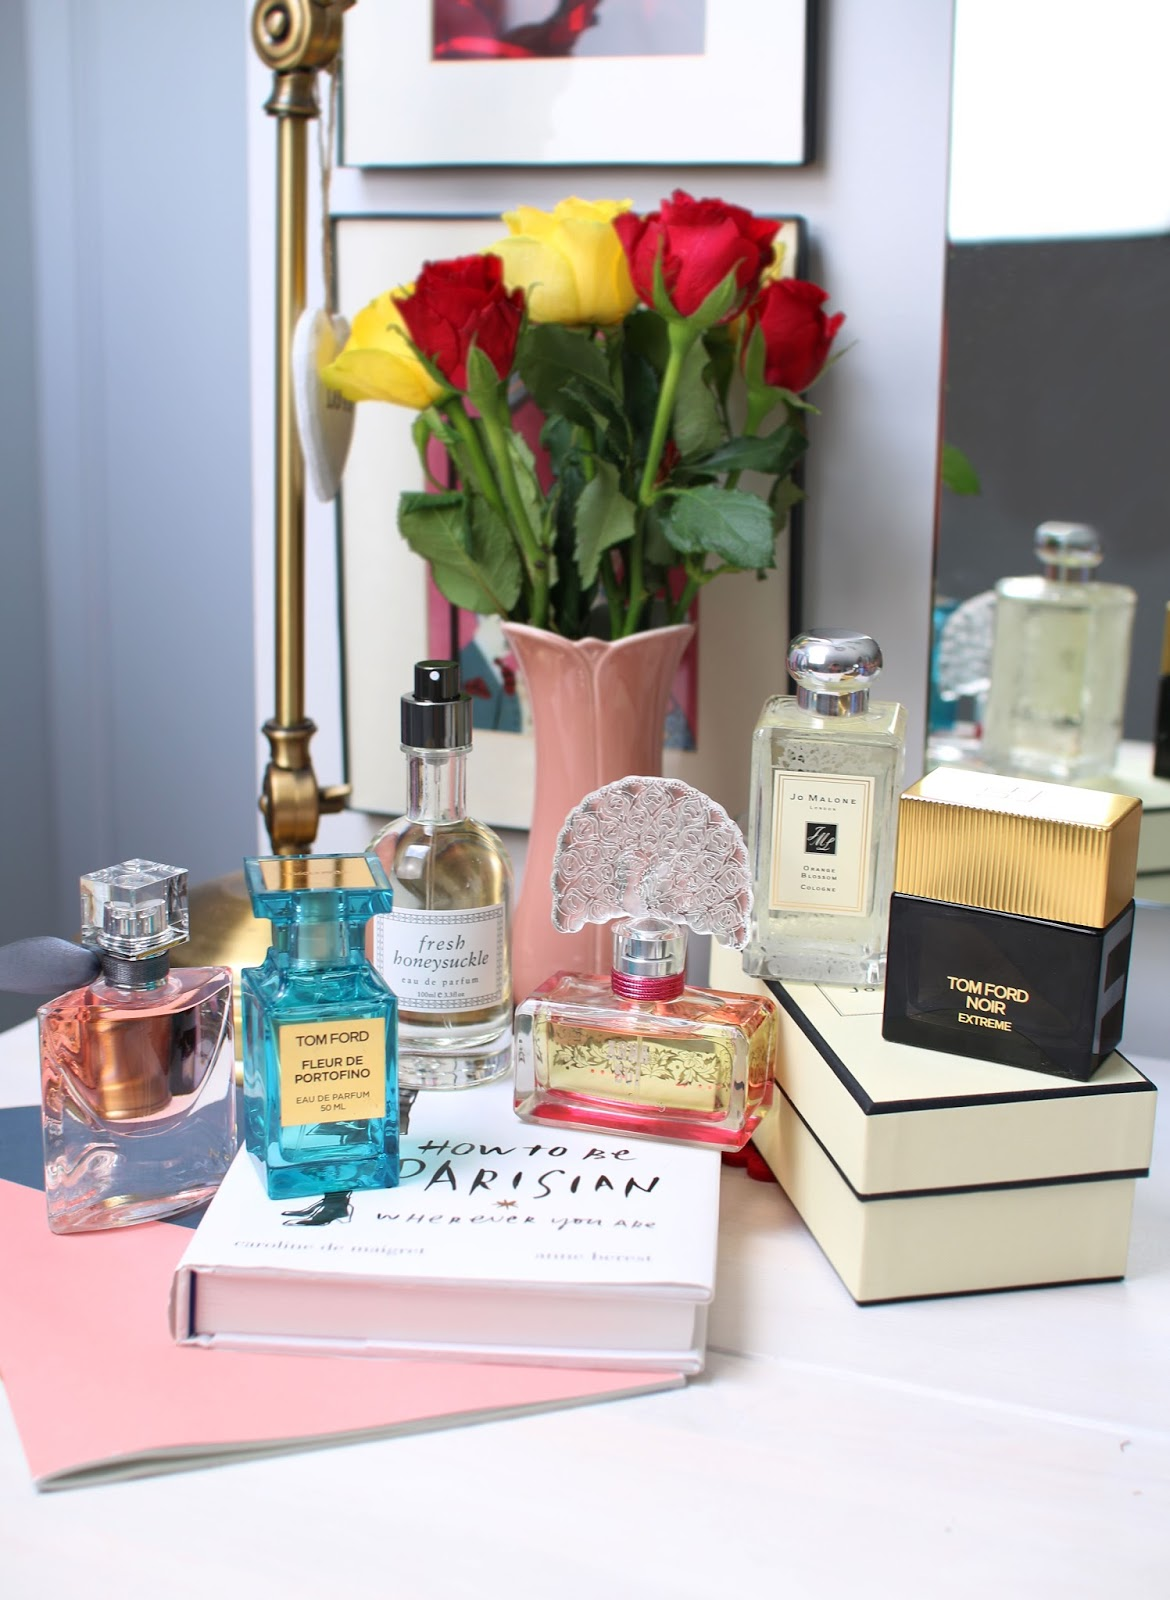 Summer Fragrances from Tom Ford, Anna Sui, Jo Malone, Fresh and Lancome